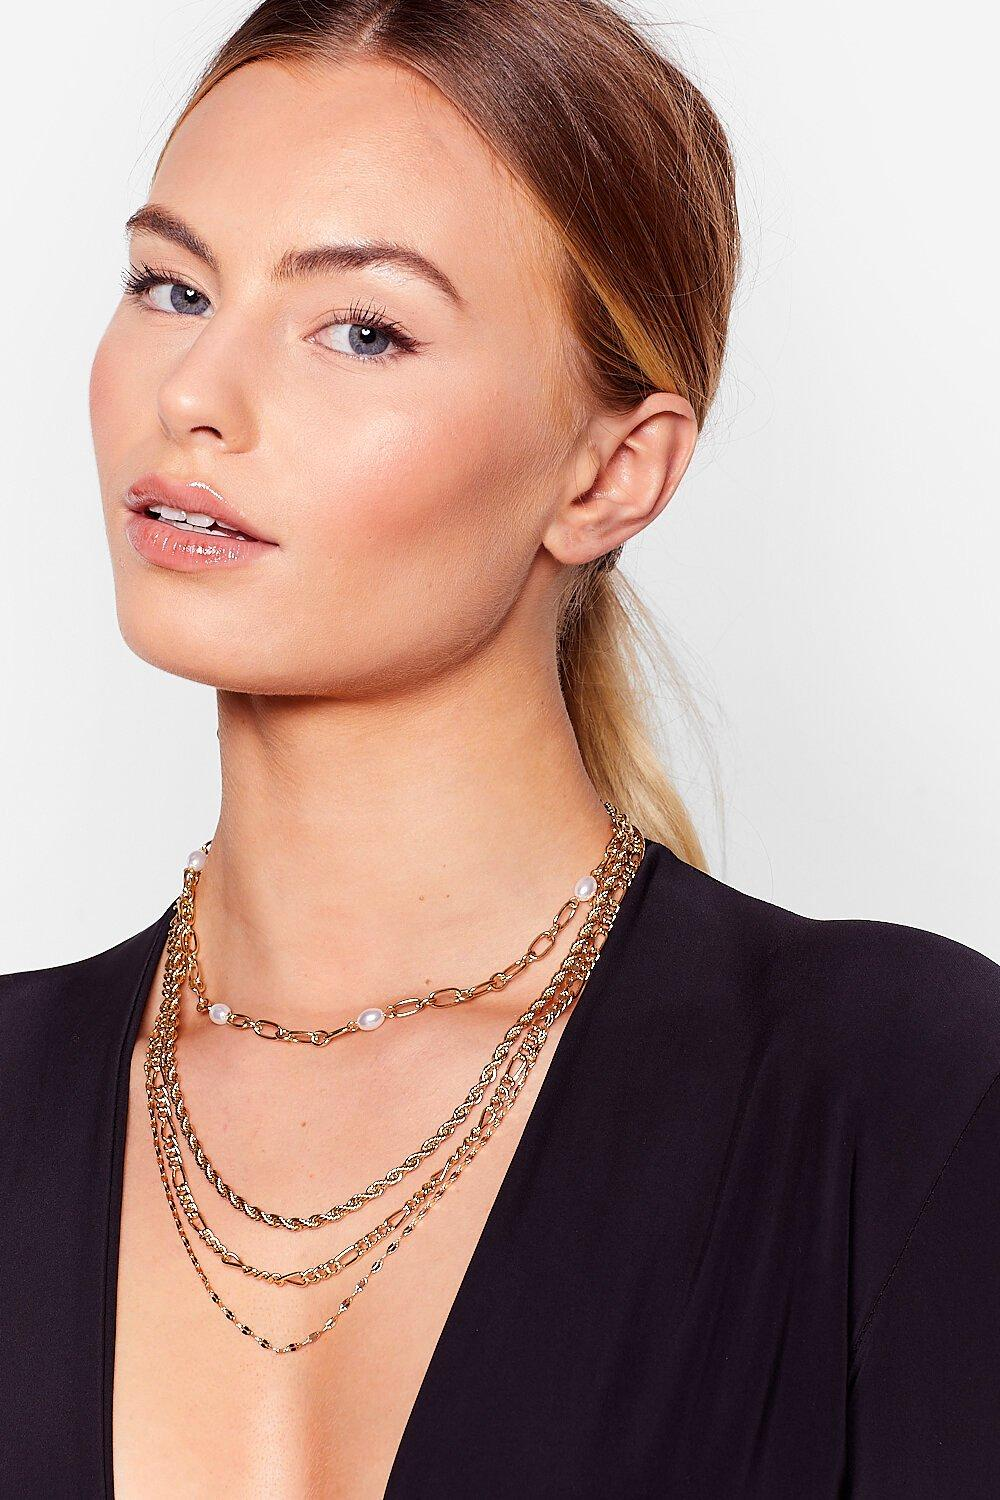 Image of Womens 4 Layer Chain Necklace - Gold